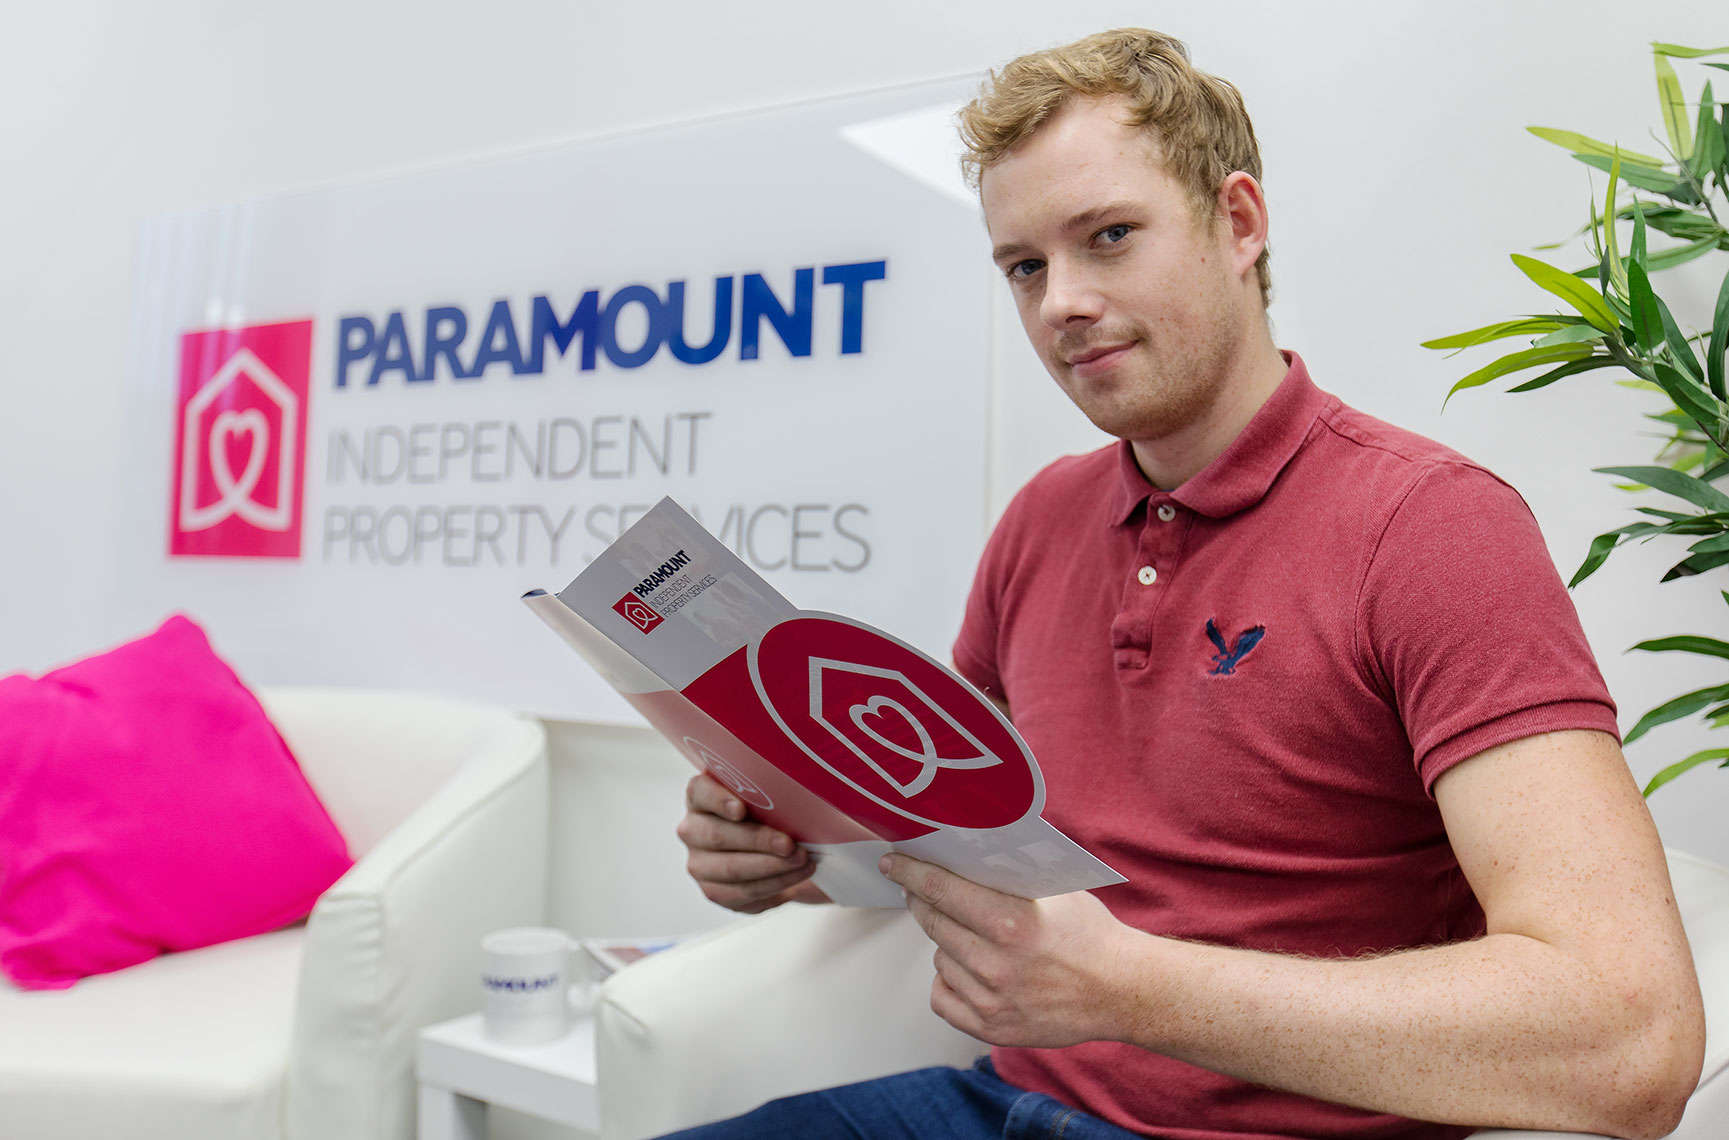 Smiling handsome young blond man reading corporate marketing brochures in business office